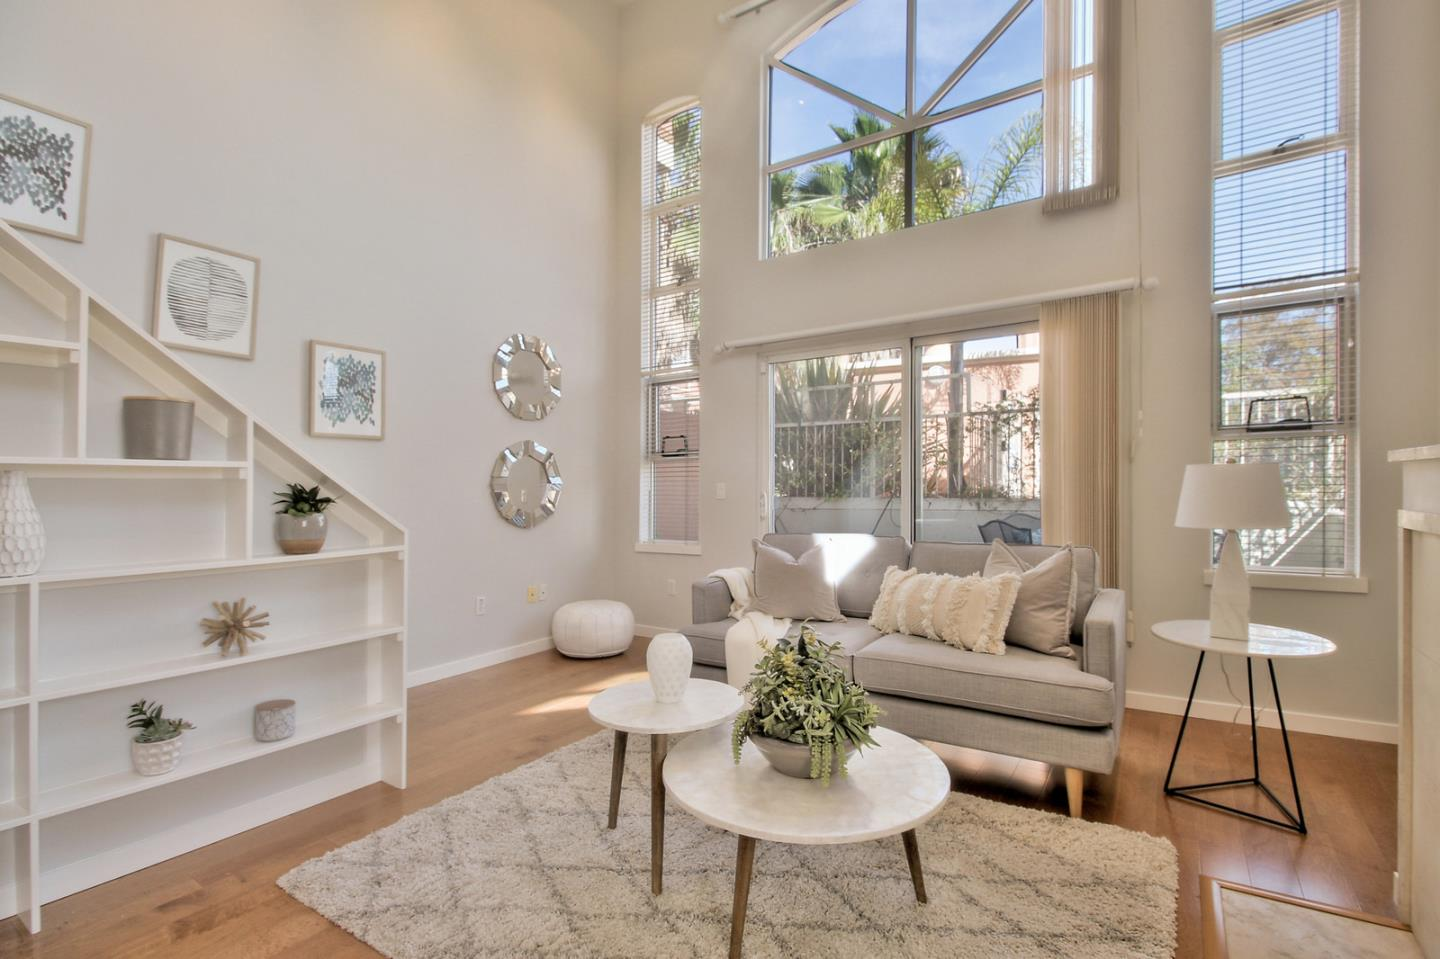 Detail Gallery Image 1 of 1 For 350 N 2nd St #116, San Jose, CA, 95112 - 2 Beds | 2 Baths